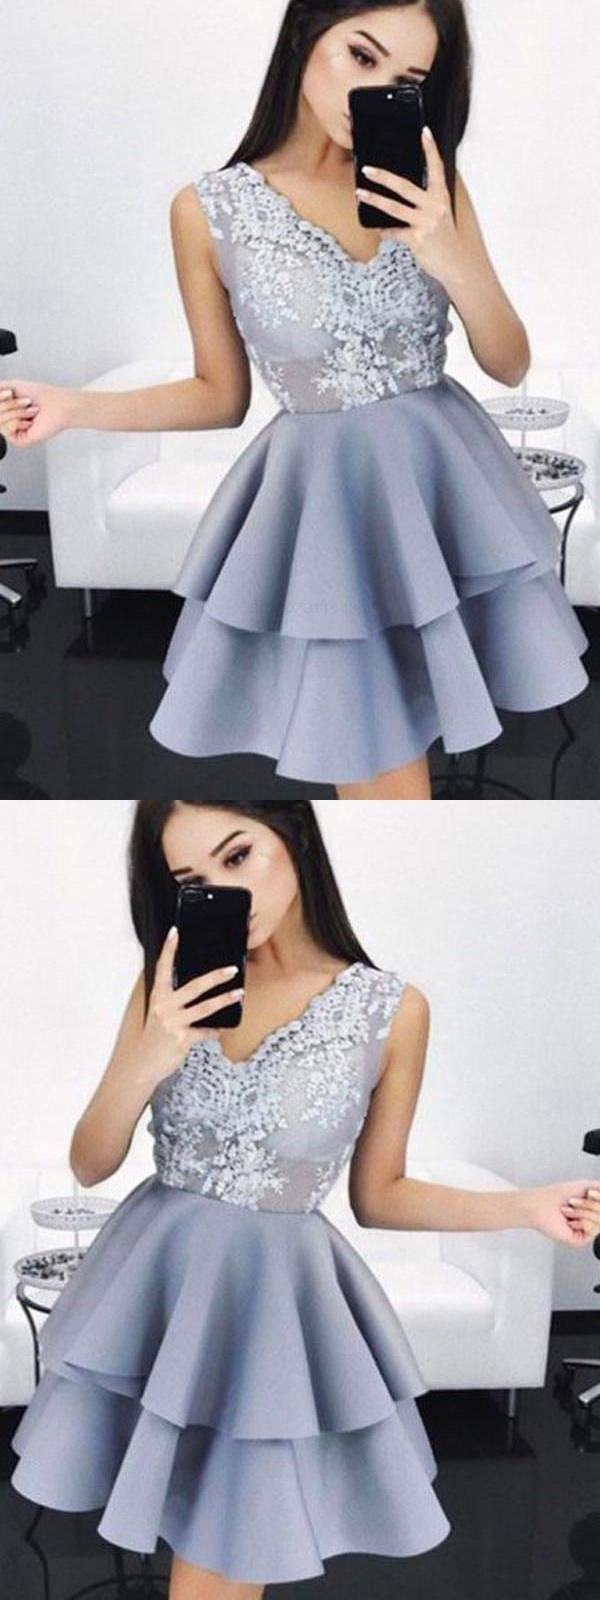 Sleeveless prom dresses vneck homecoming dress vneck homecoming